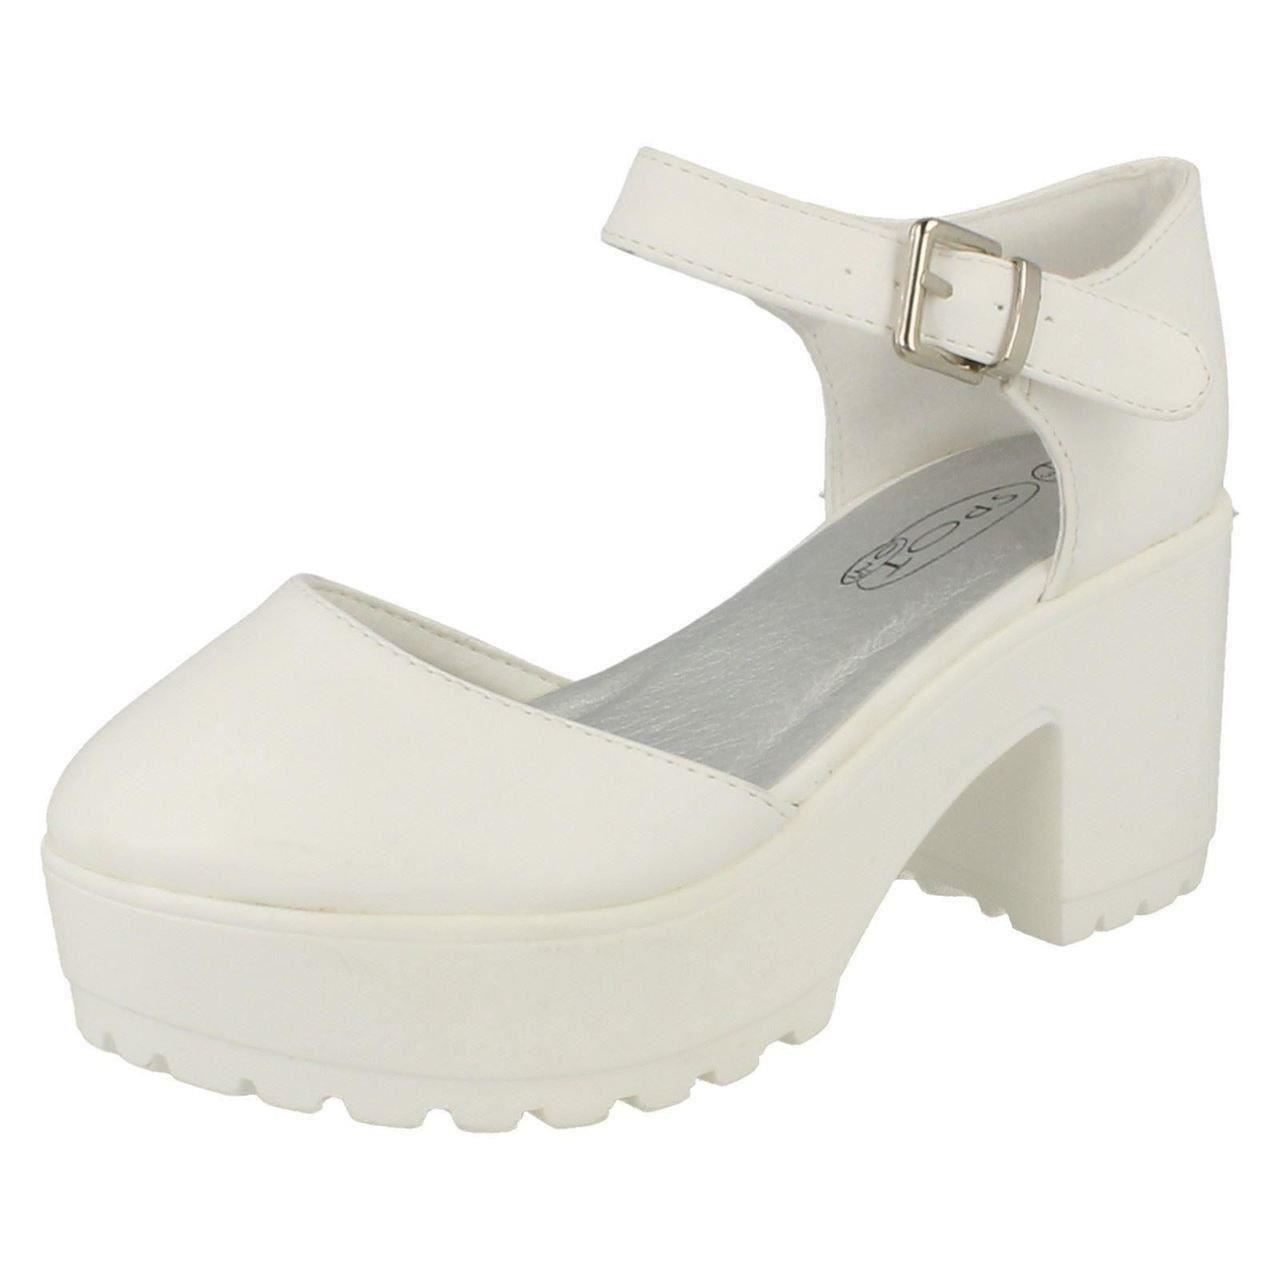 Girls Spot On Platform Heeled Shoes Label H3047 - D